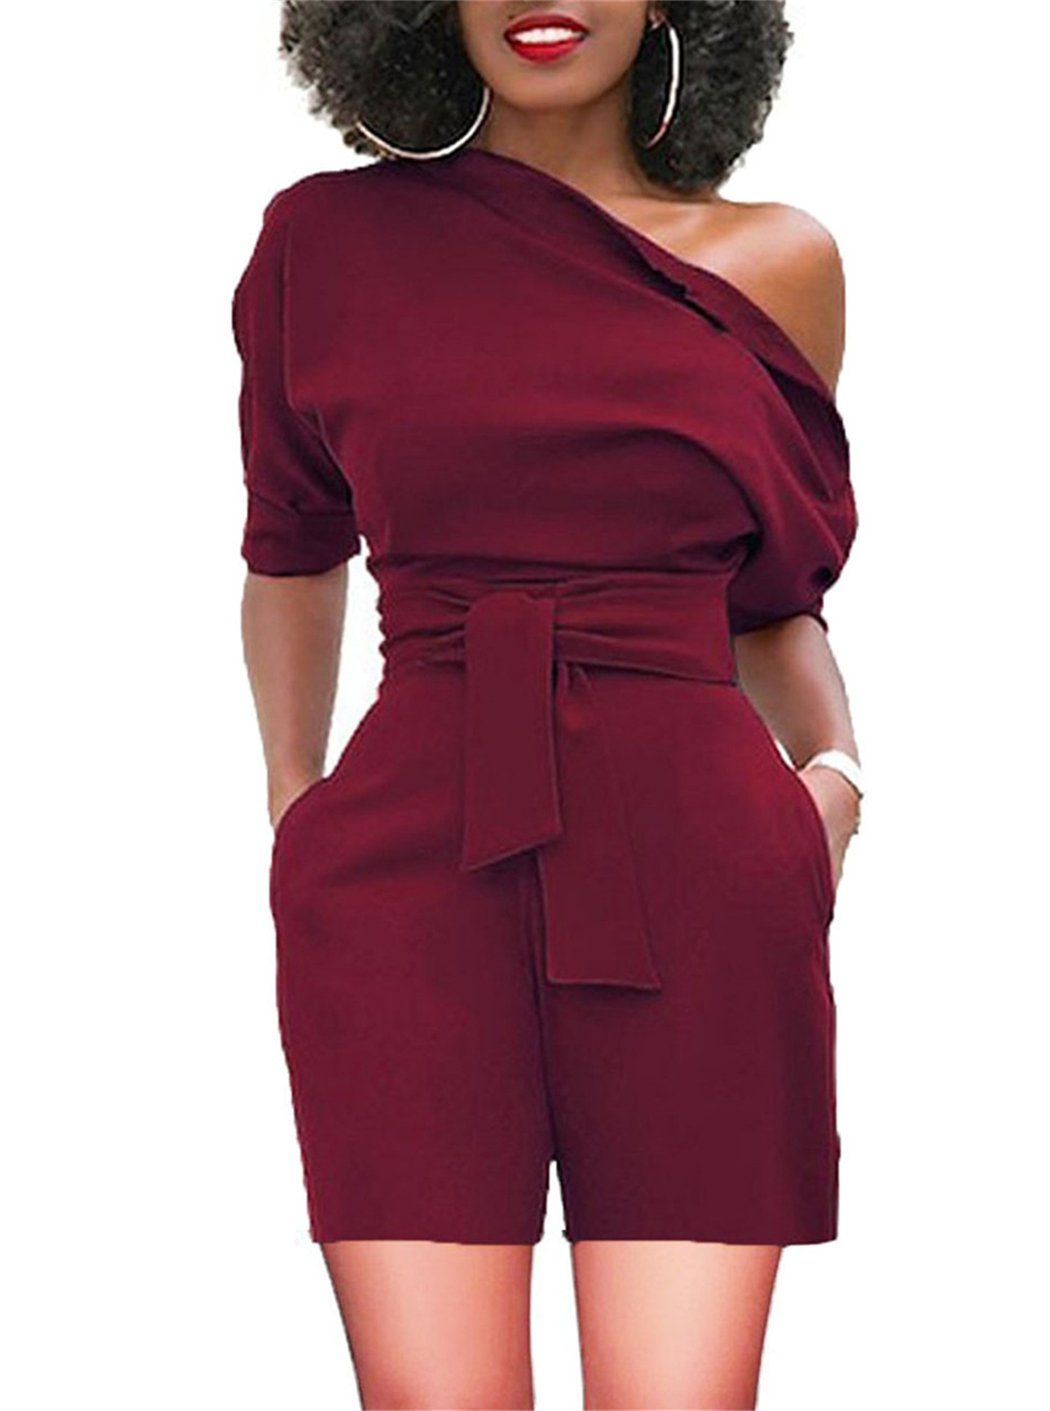 BETTE BOUTIK Women's Summer Party Playsuits Causual Style Short Jumpsuits Belt WineRed XX-Large